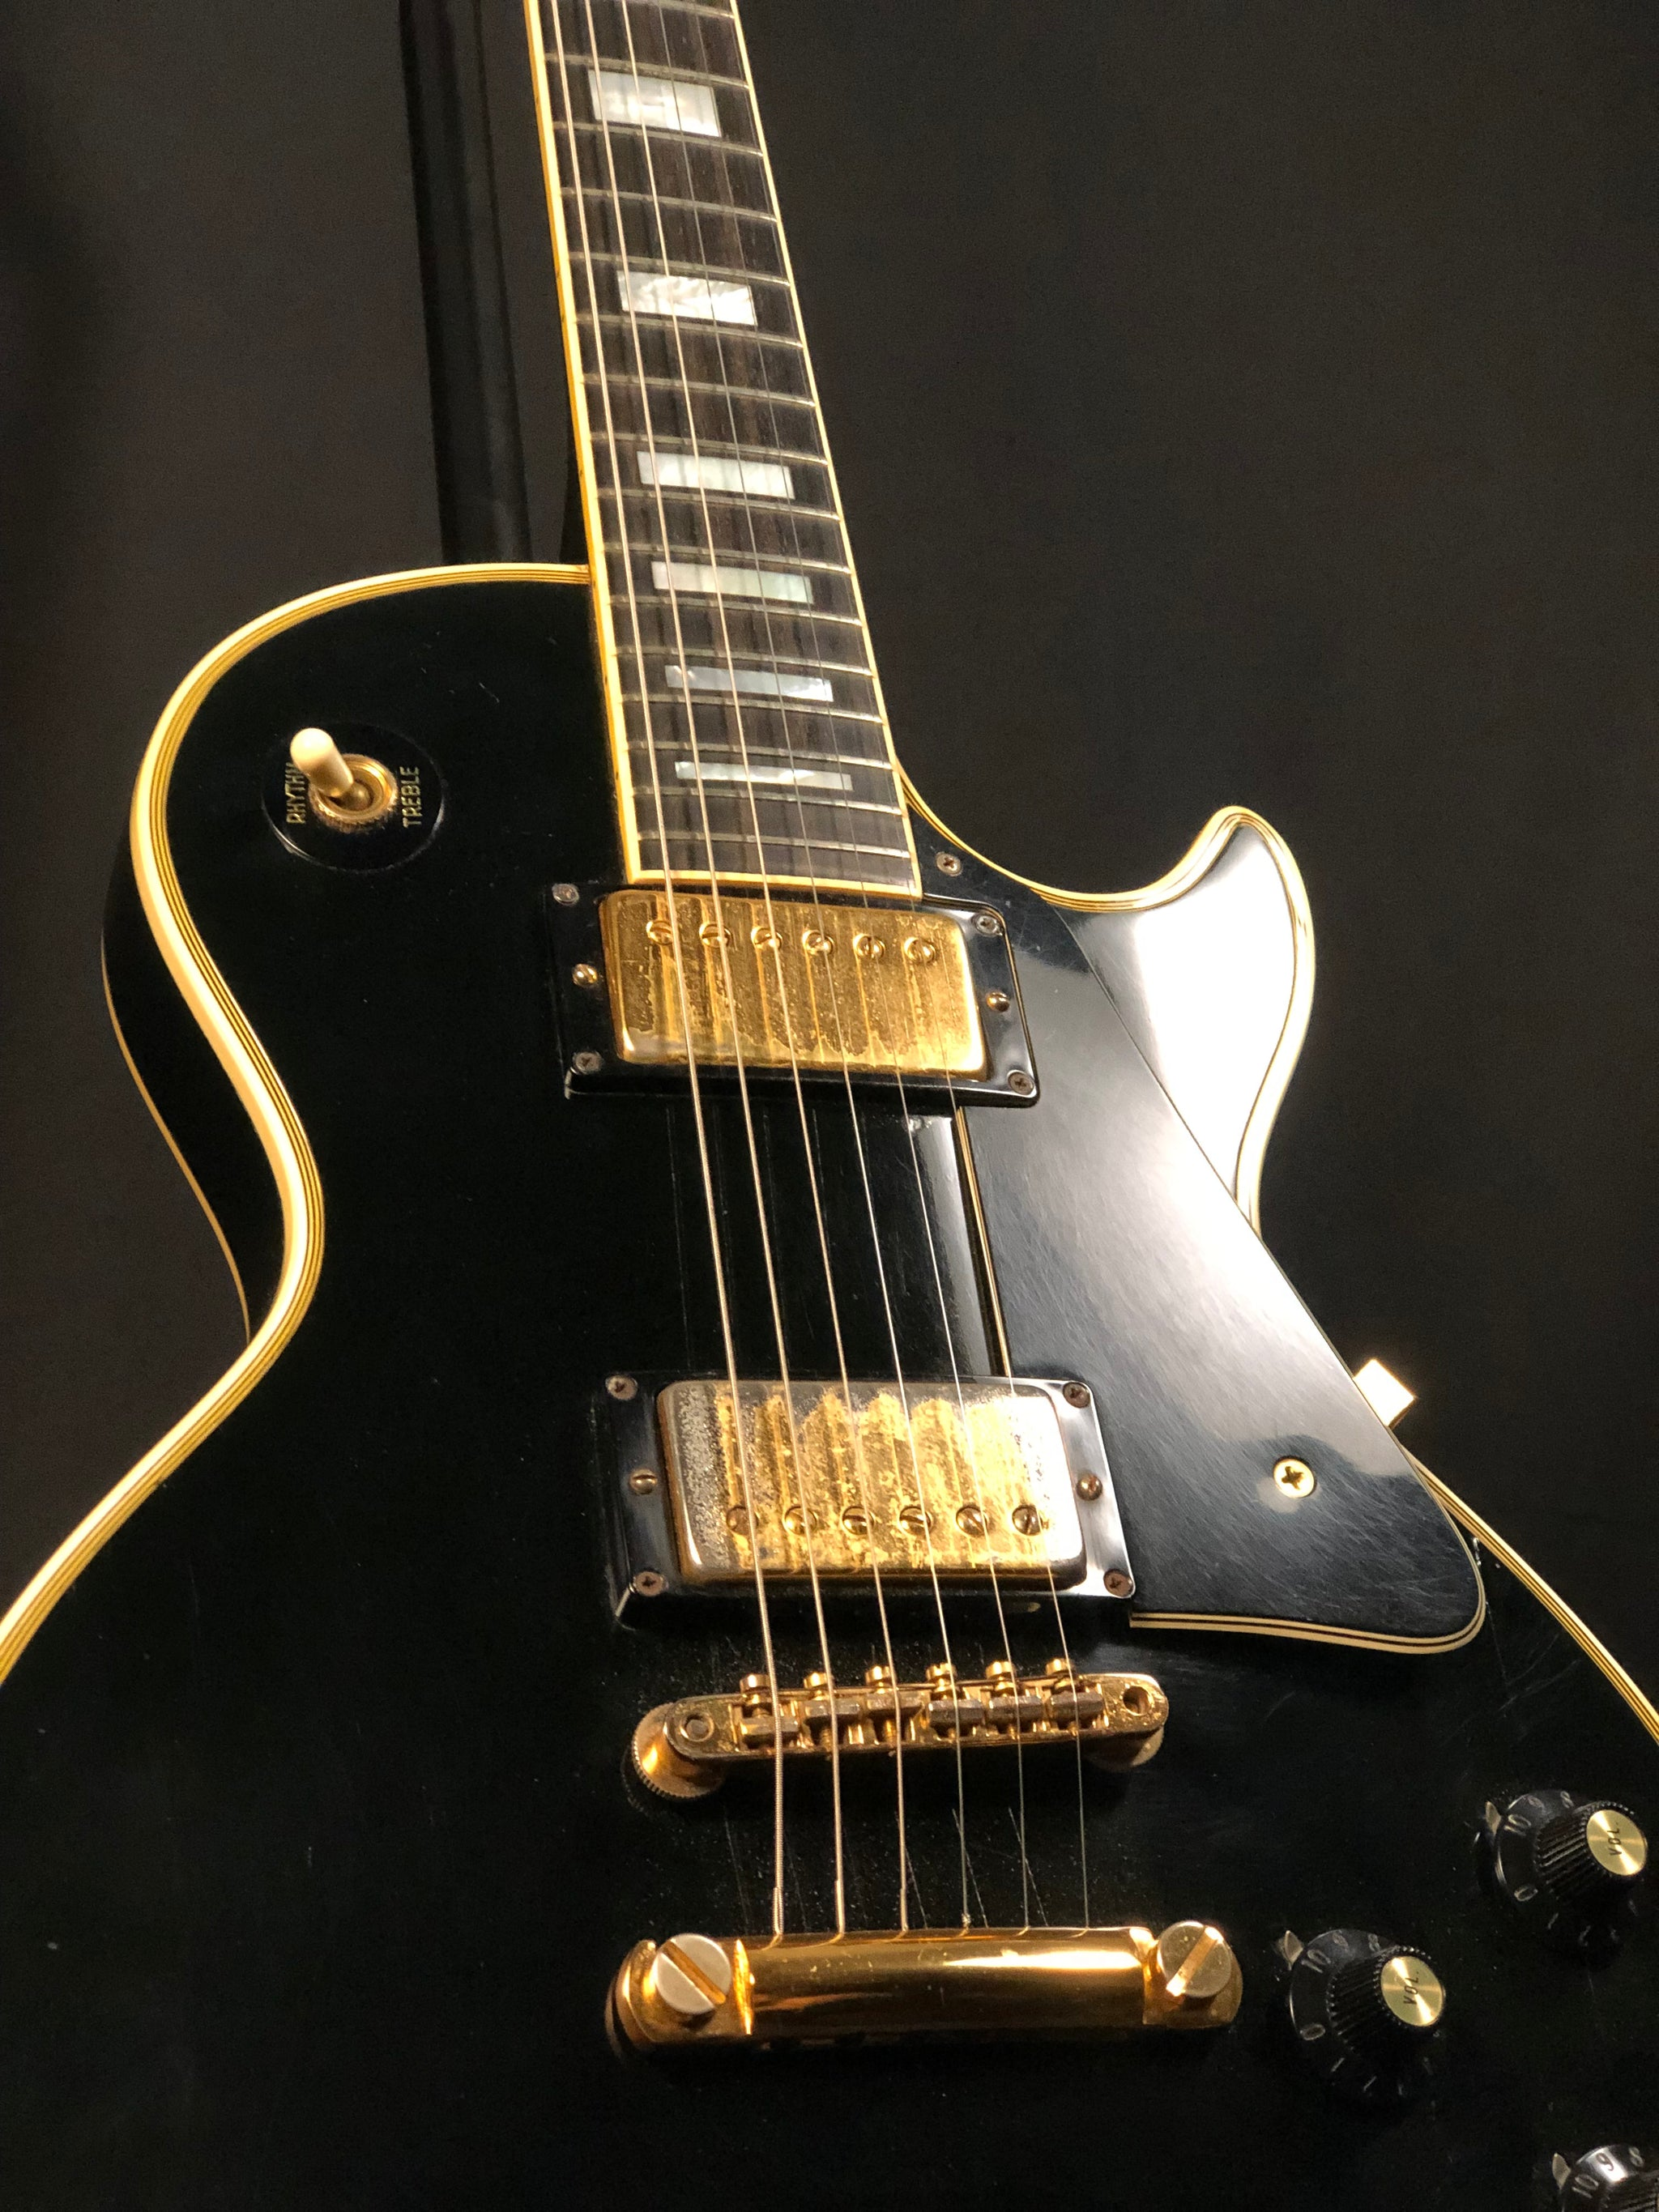 *** SOLD *** 1971 Gibson Les Paul Custom